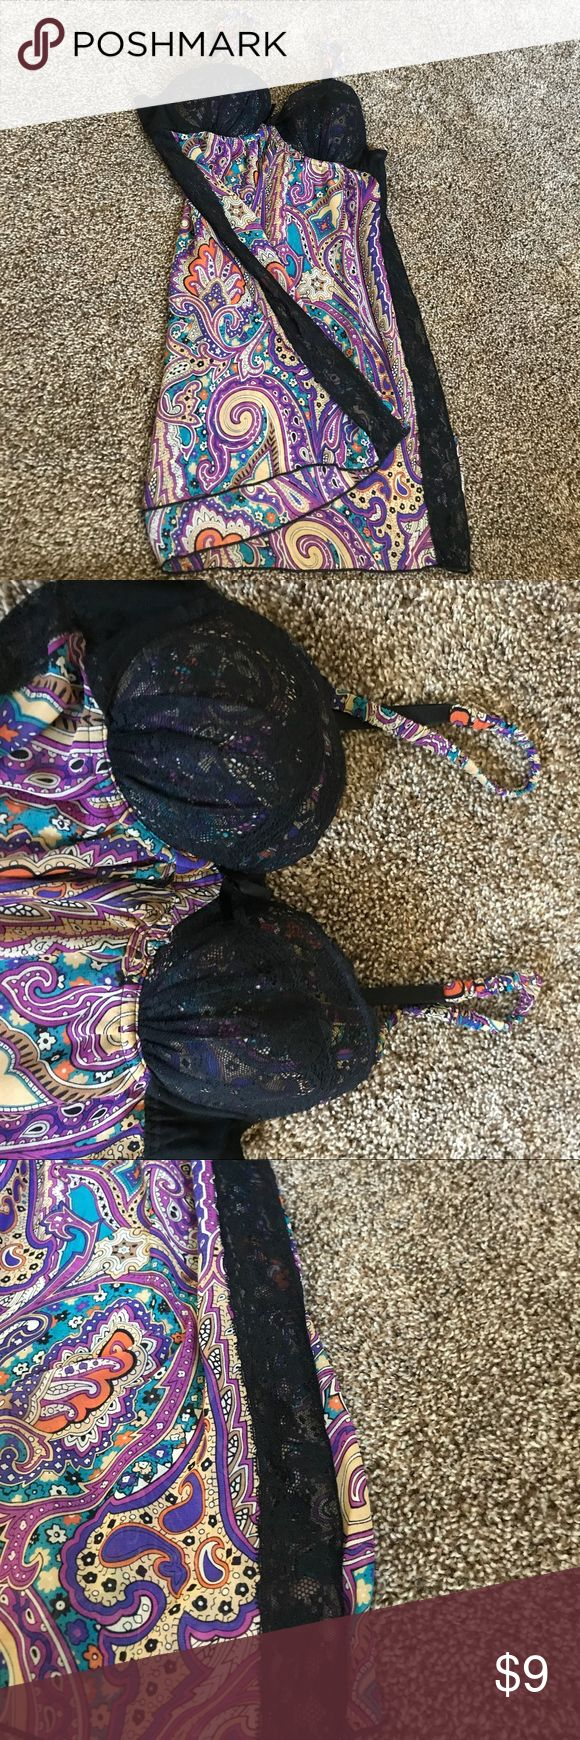 Gorgeous lingerie top. Like new. Barely worn. Beautiful paisley lingerie top with lace accented sides. Flowy and gorgeous. Barely worn. Intimates & Sleepwear